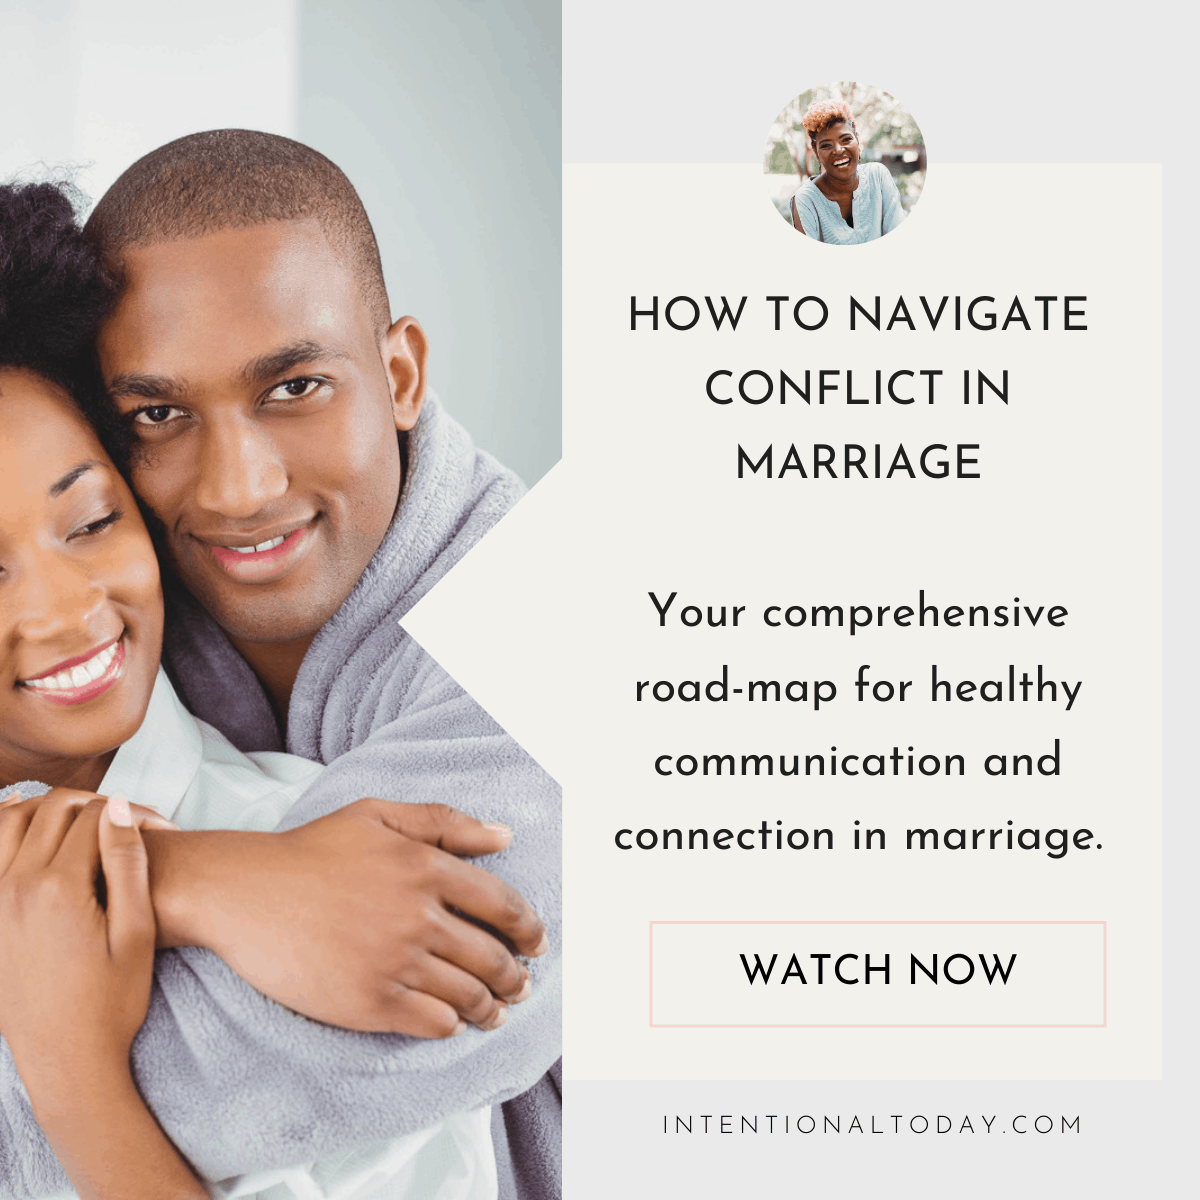 How to navigate conflict in marriage - roadmap for healthy communication in marriage